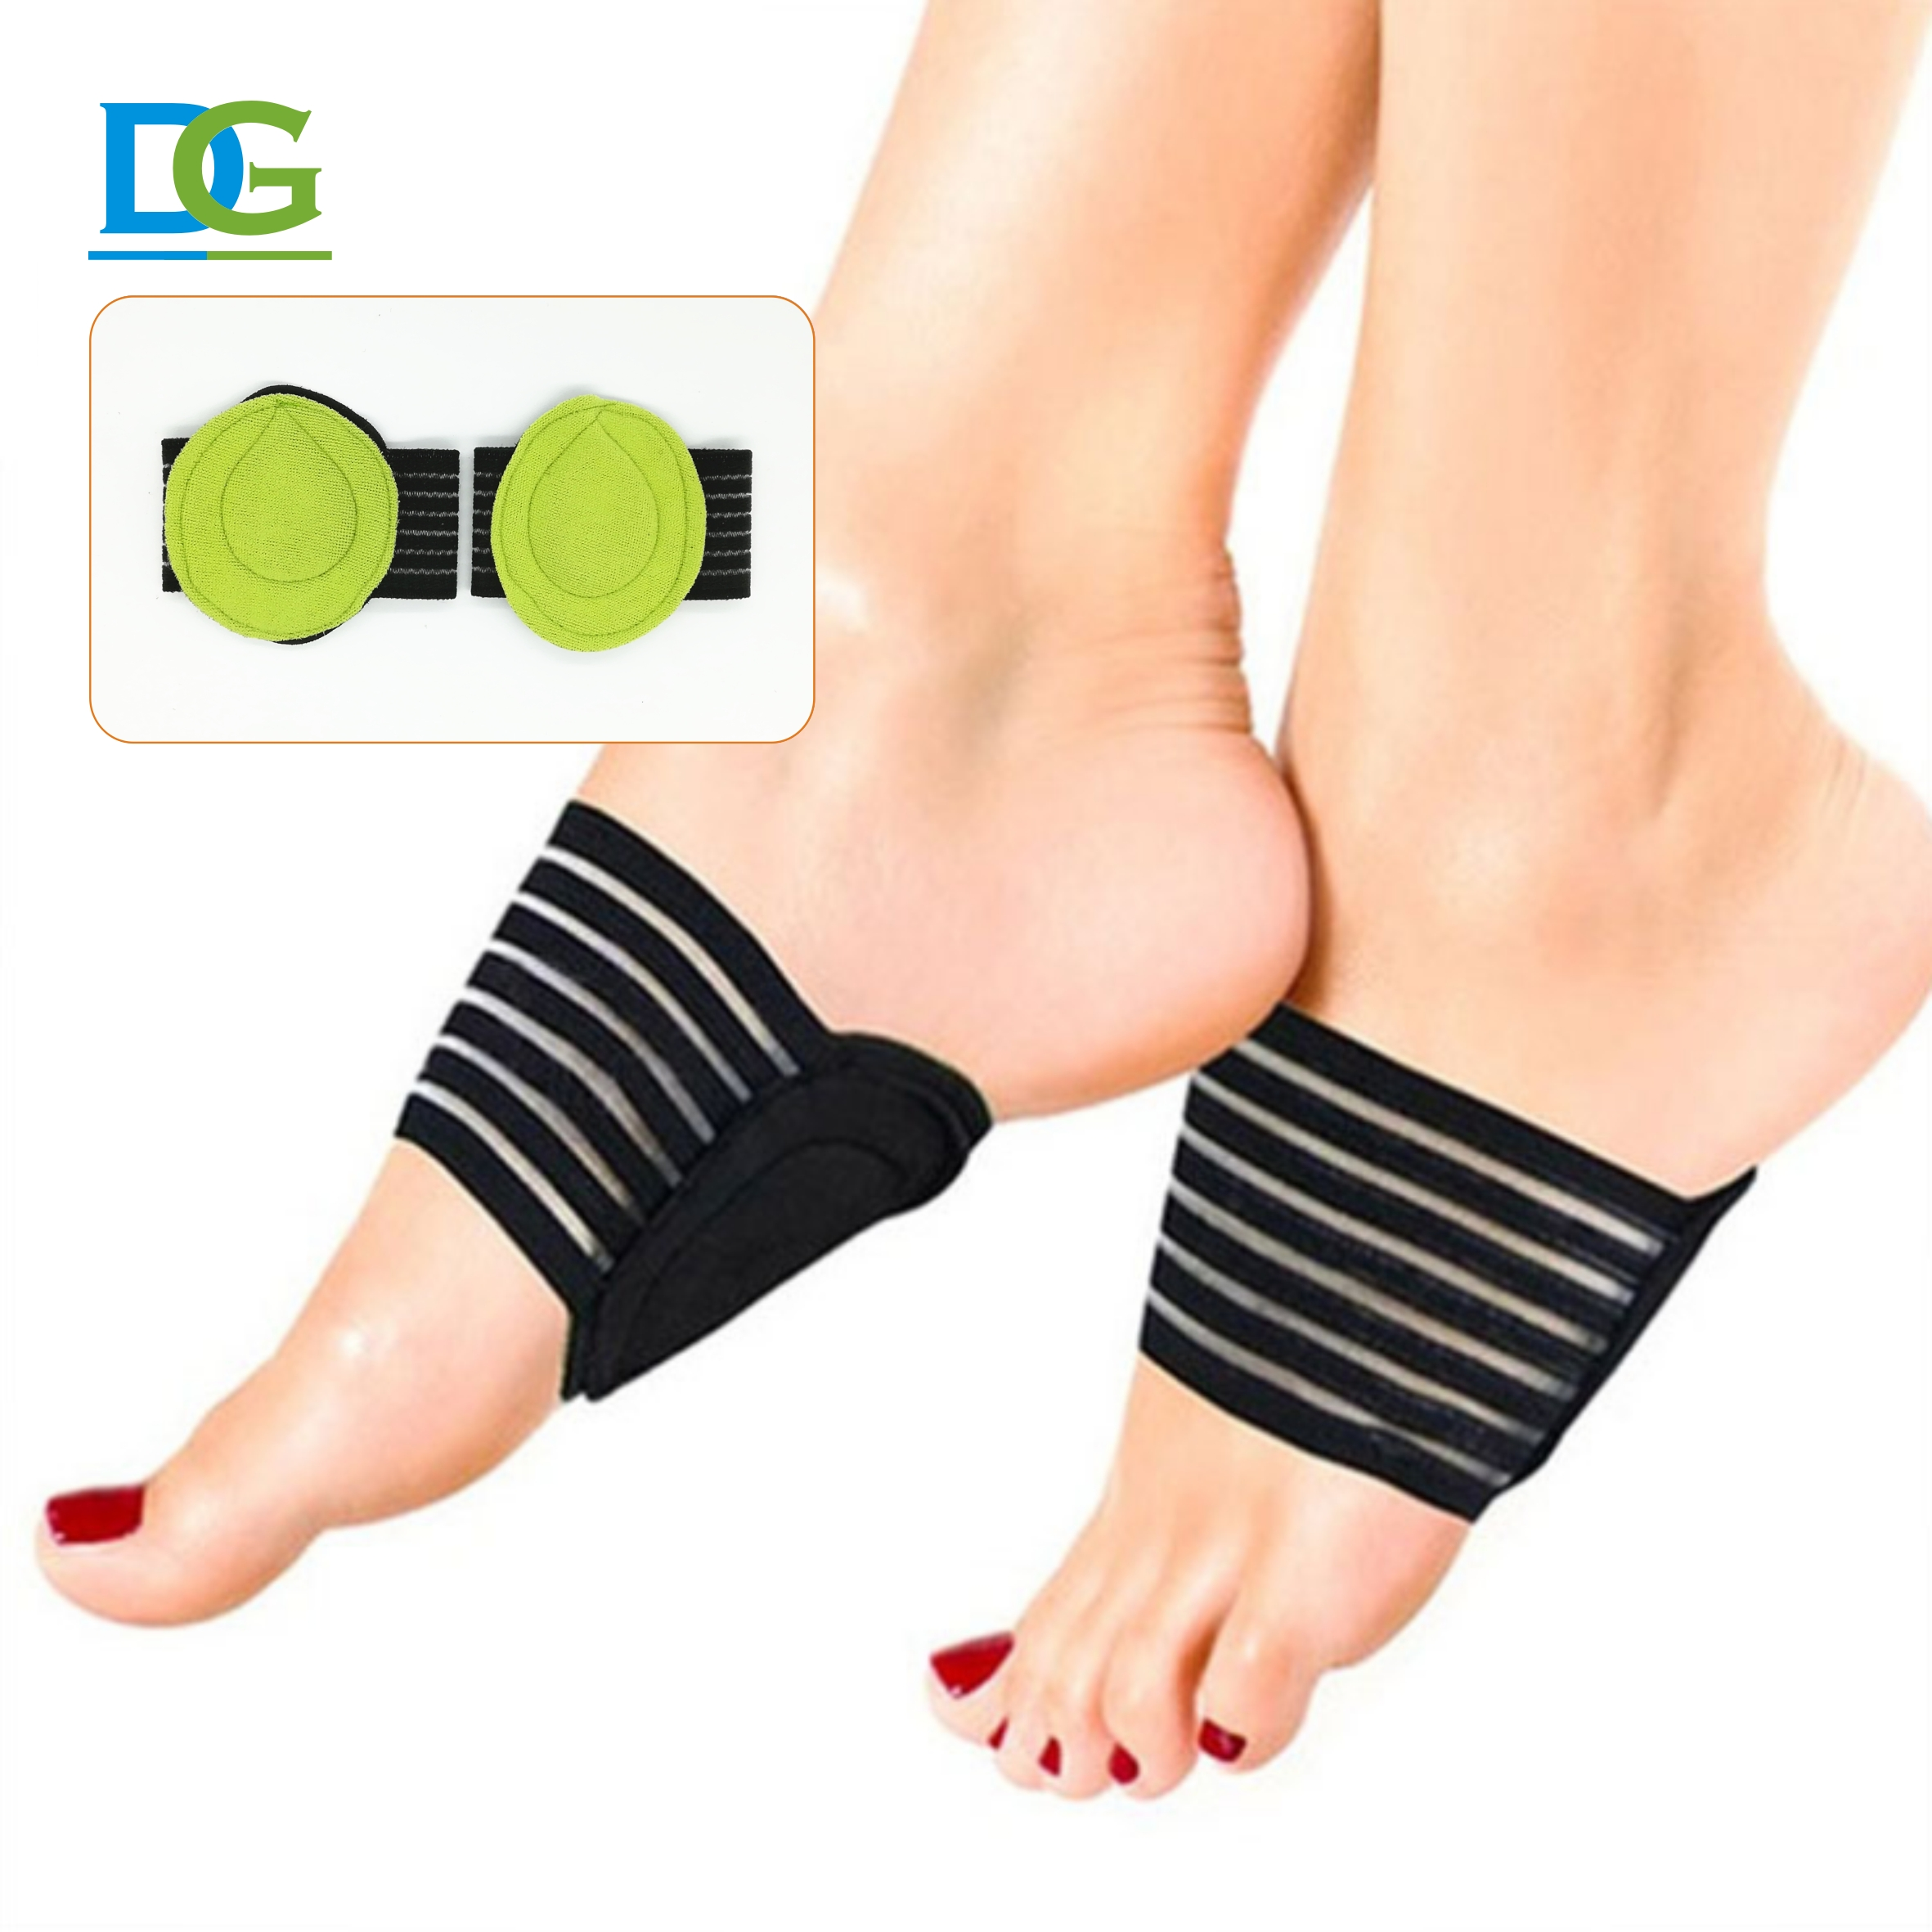 New design cotton arch support for flat feet cushion arch support plantar fasciitis cushion with great price